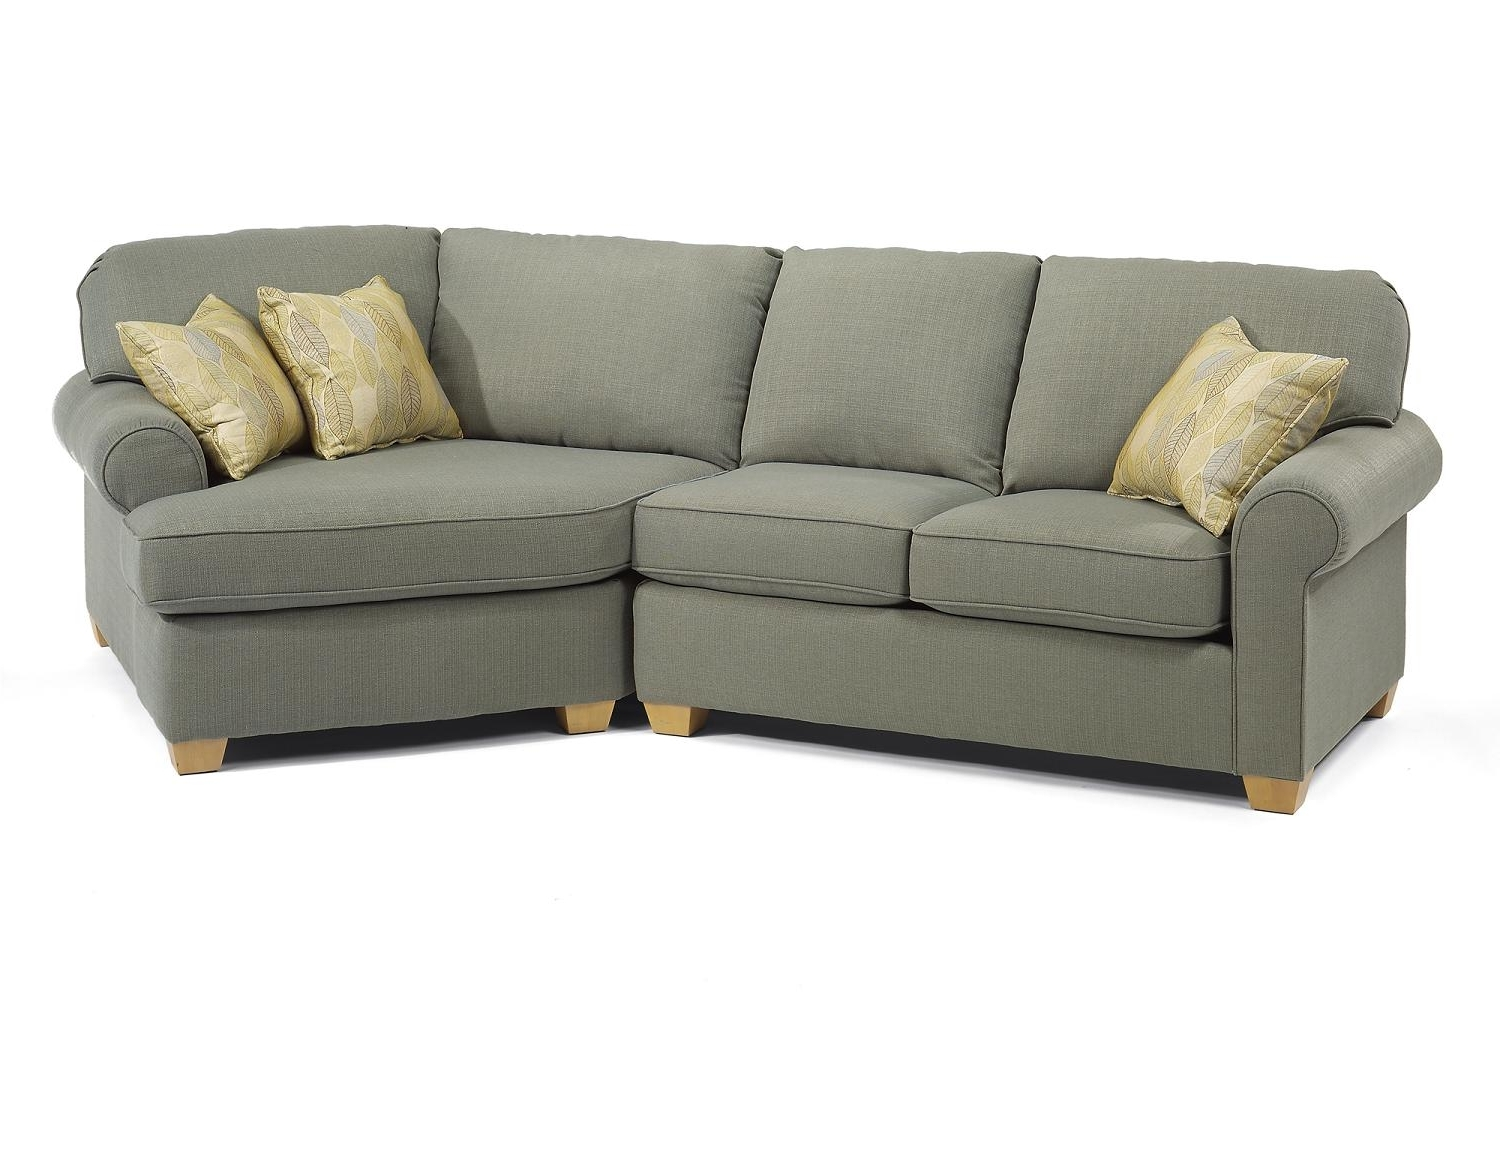 Favorite Stylish Small Sectional Sofa With Chaise — Fabrizio Design For Small Sectional Sofas (View 13 of 20)